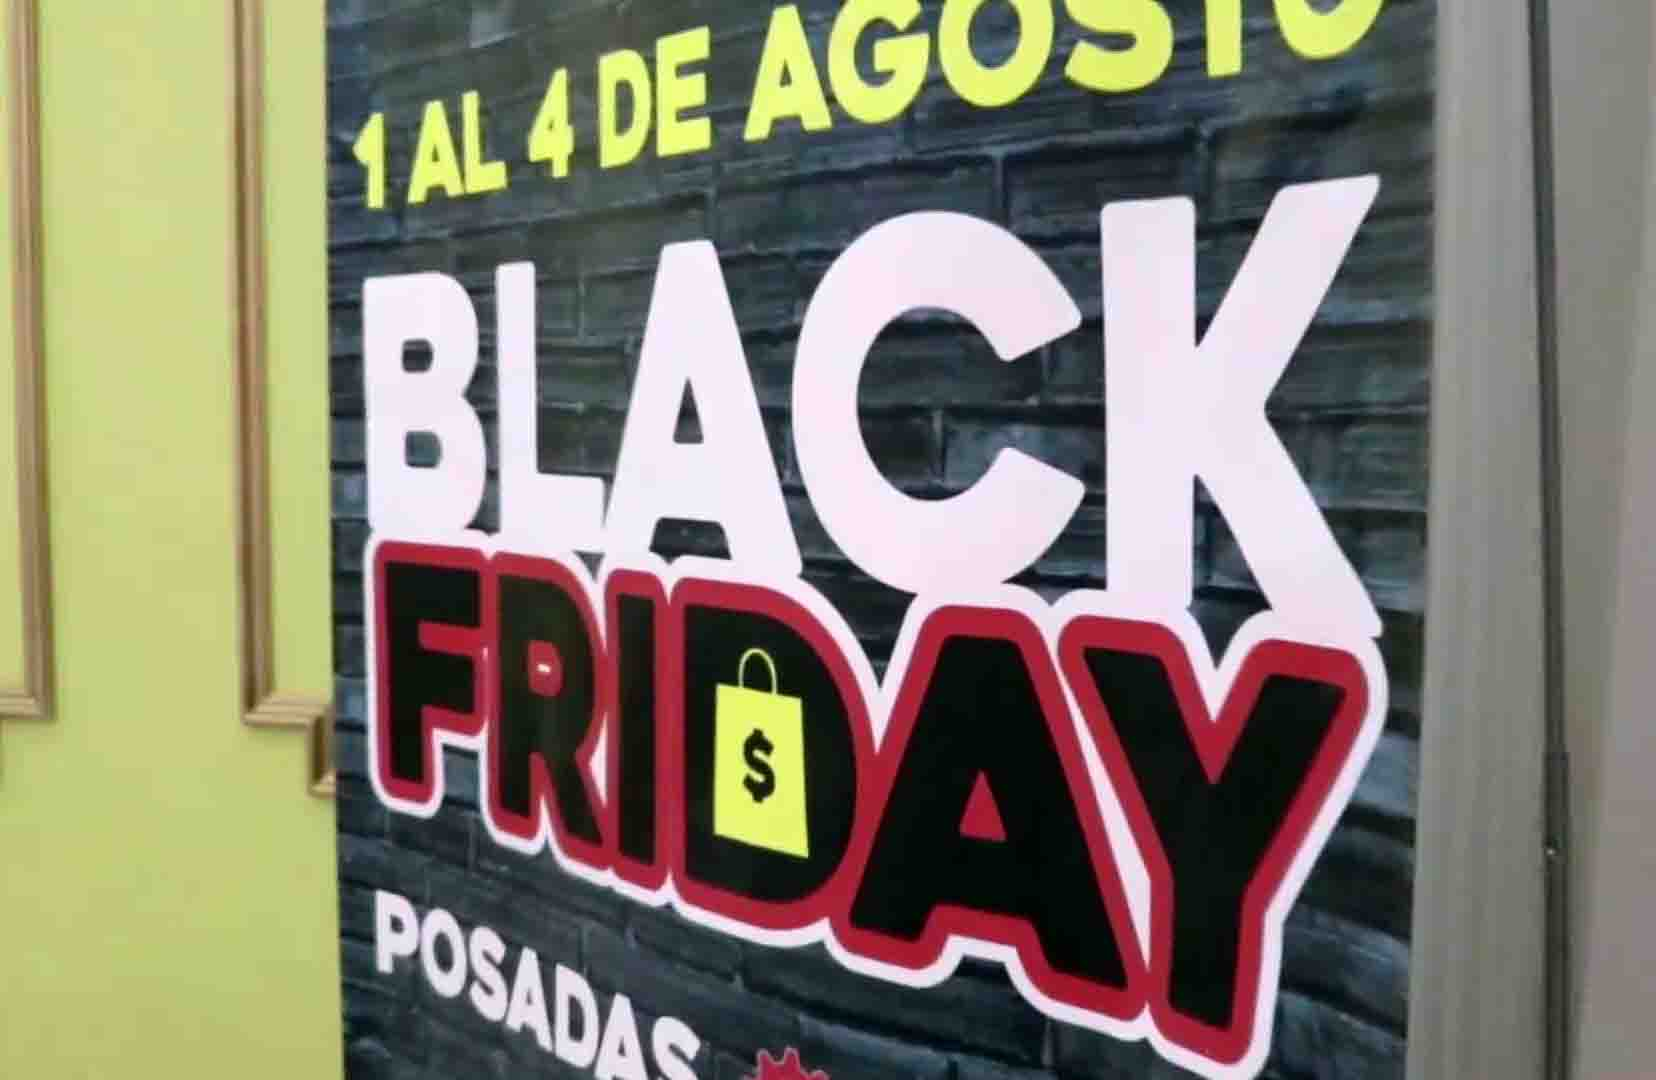 Black Friday 2019 del 1 al 4 de agosto